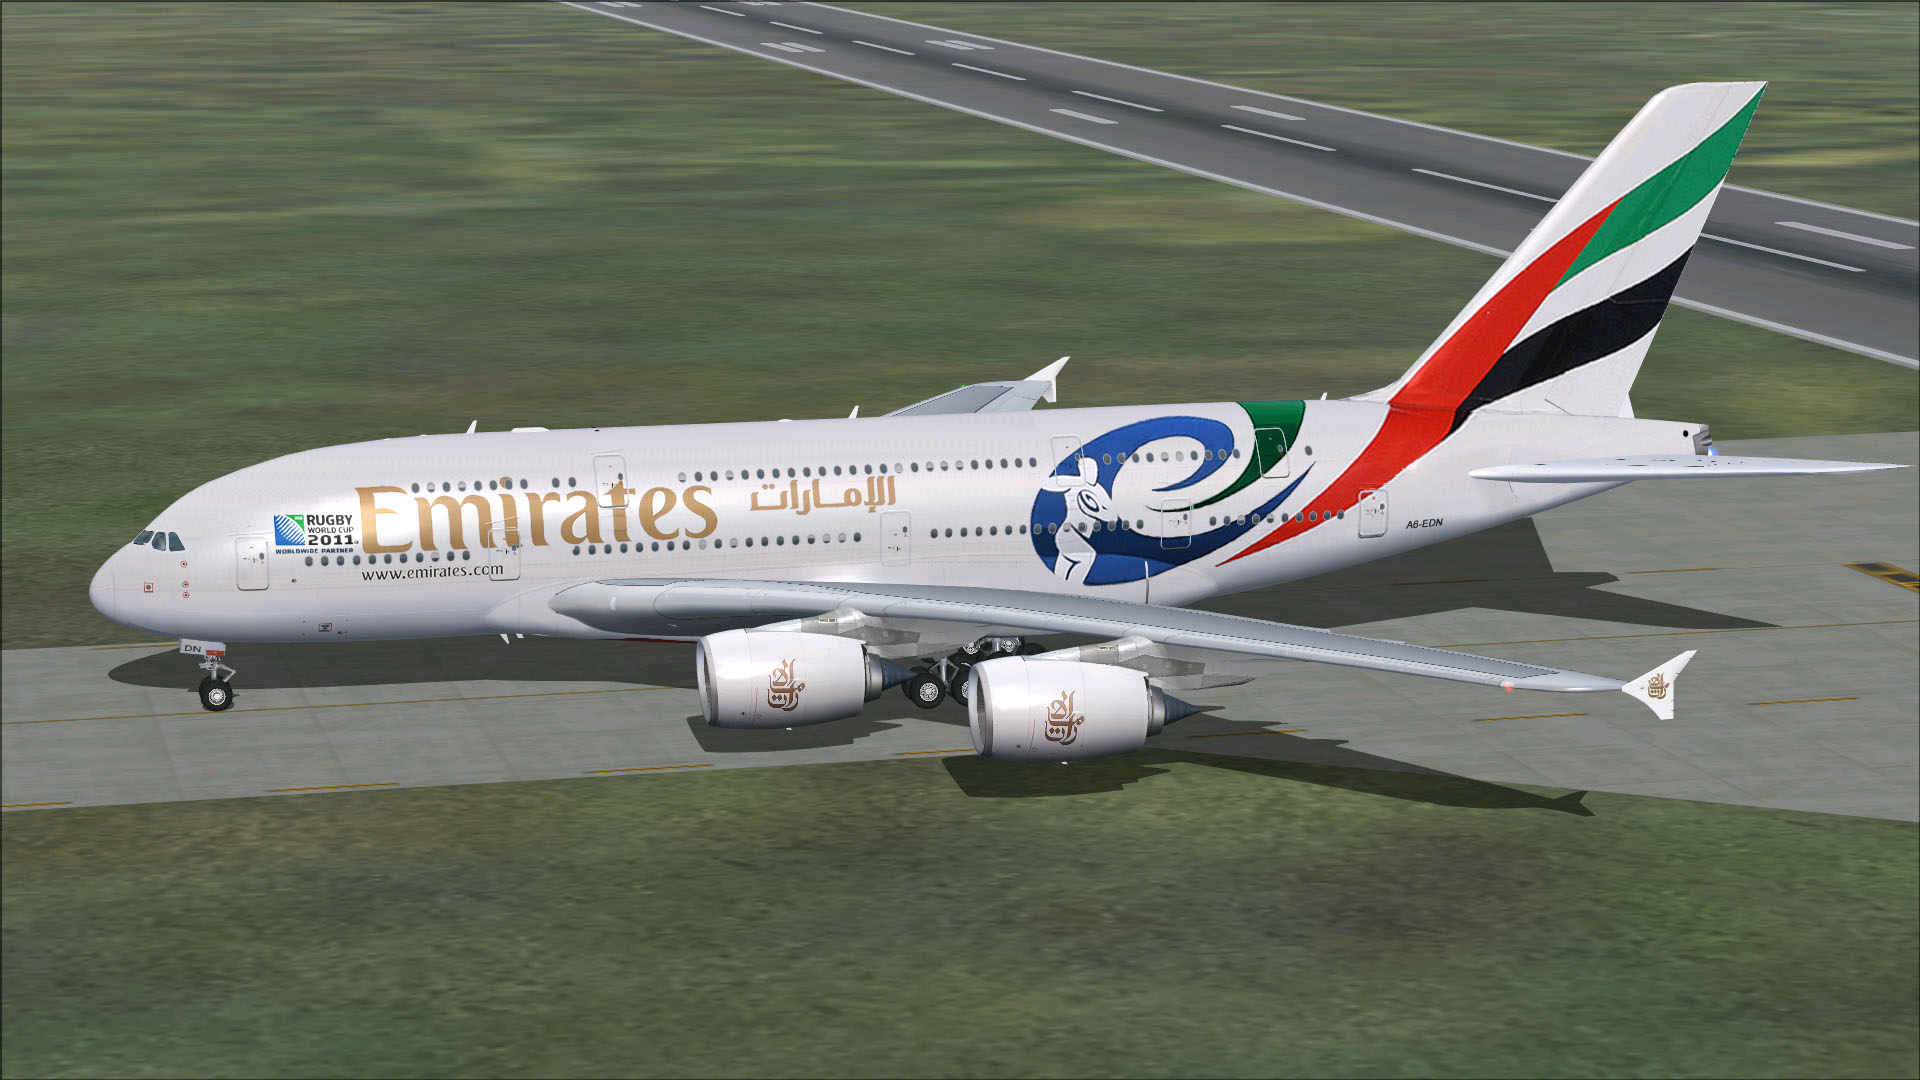 fs-freeware net - FSX Airbus A380-841 Emirates Rugby World